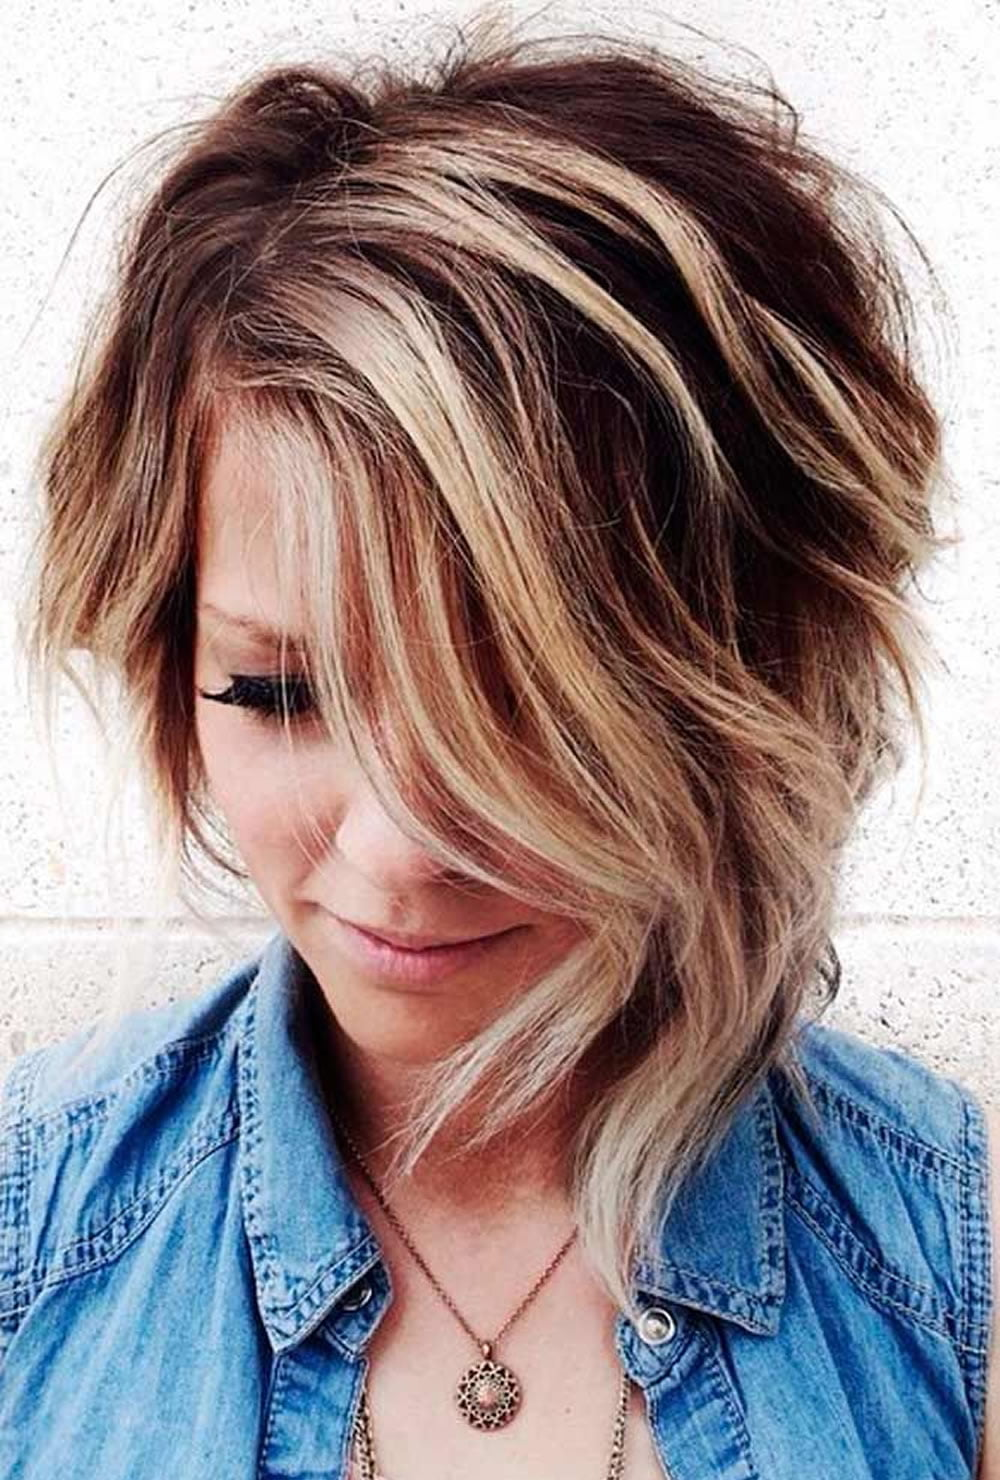 Short Curly Hairstyles for Women: Blonde Hair pics